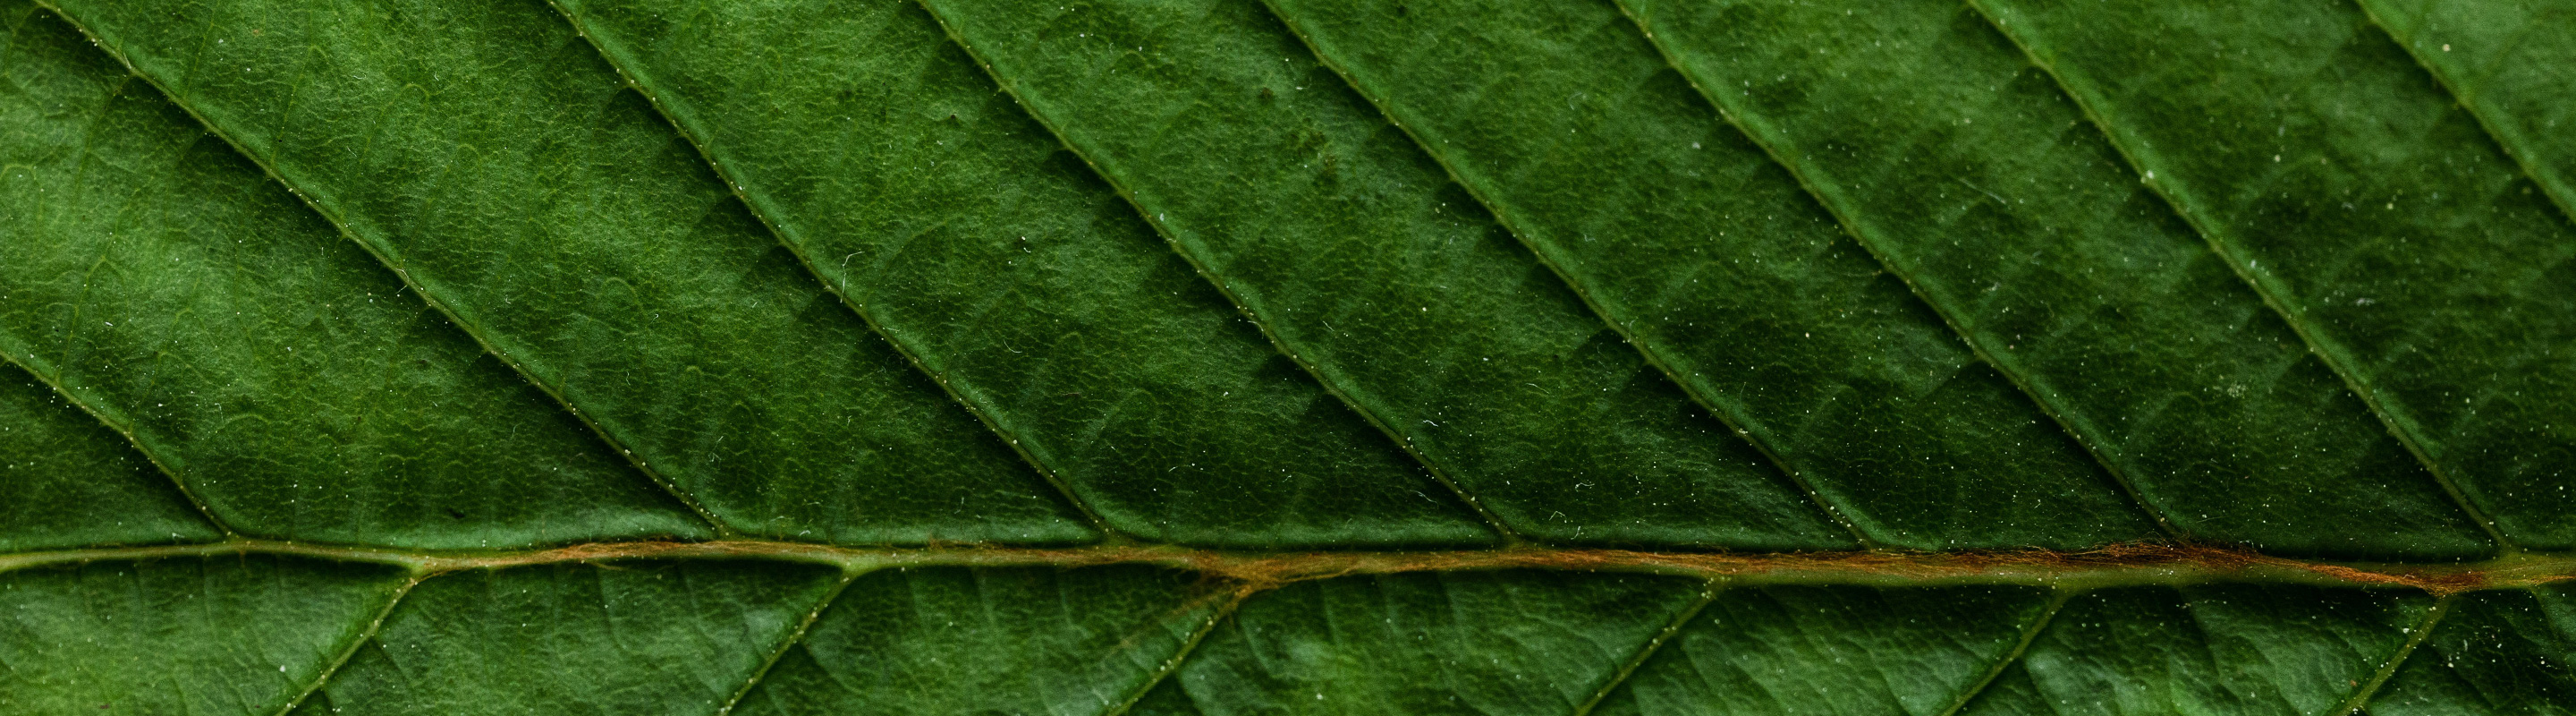 closeup of the veins on a leaf